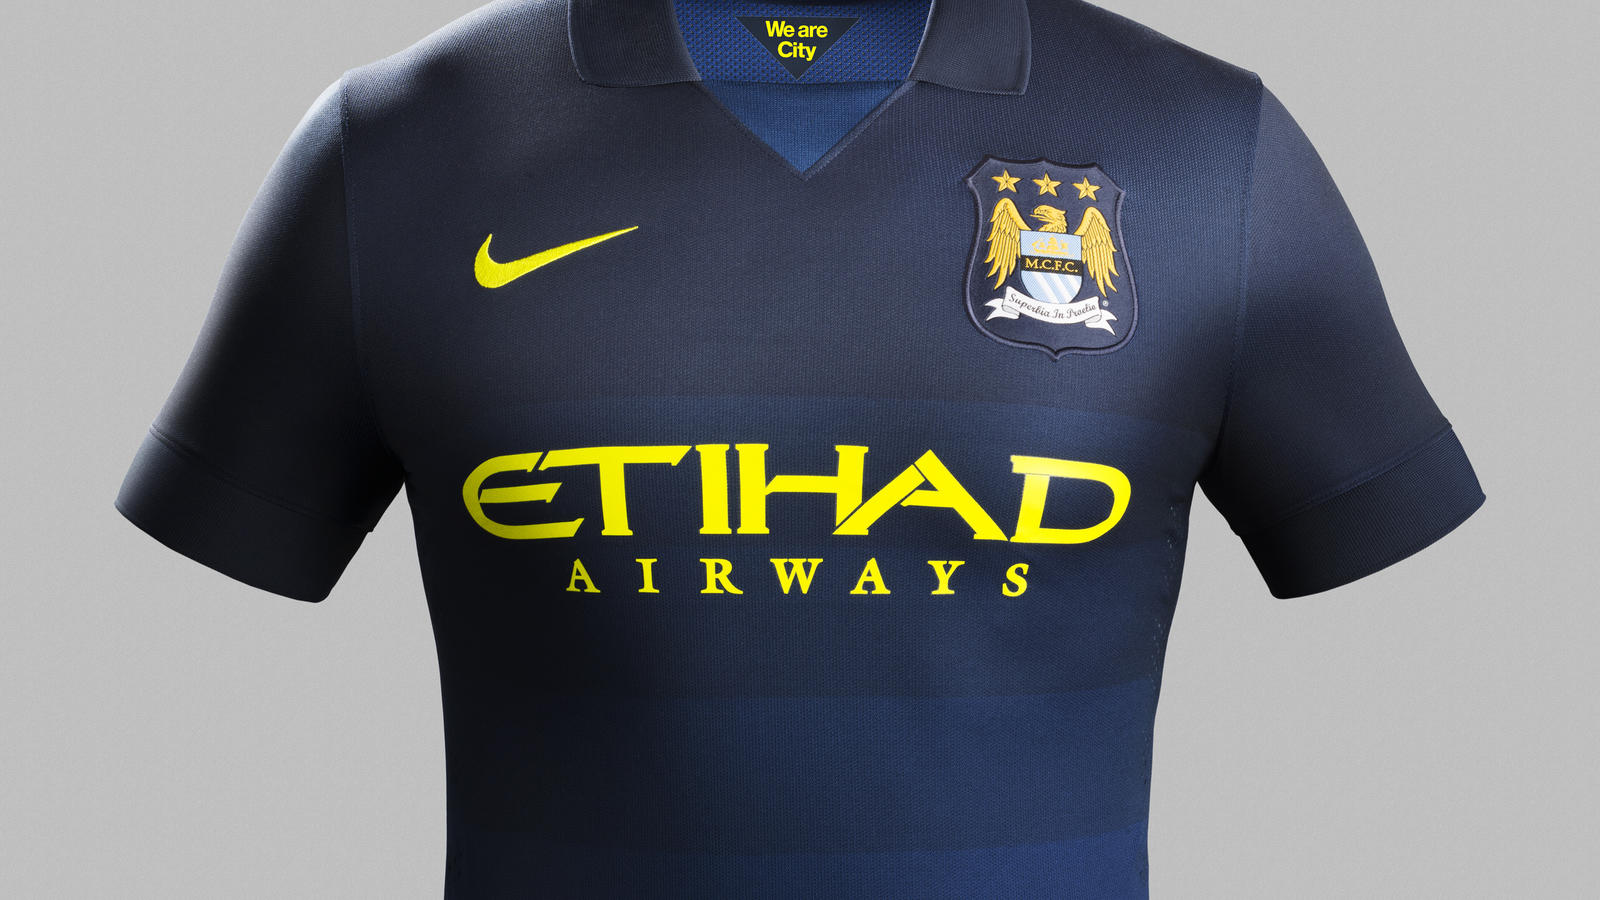 Manchester City Away Shirt - Front